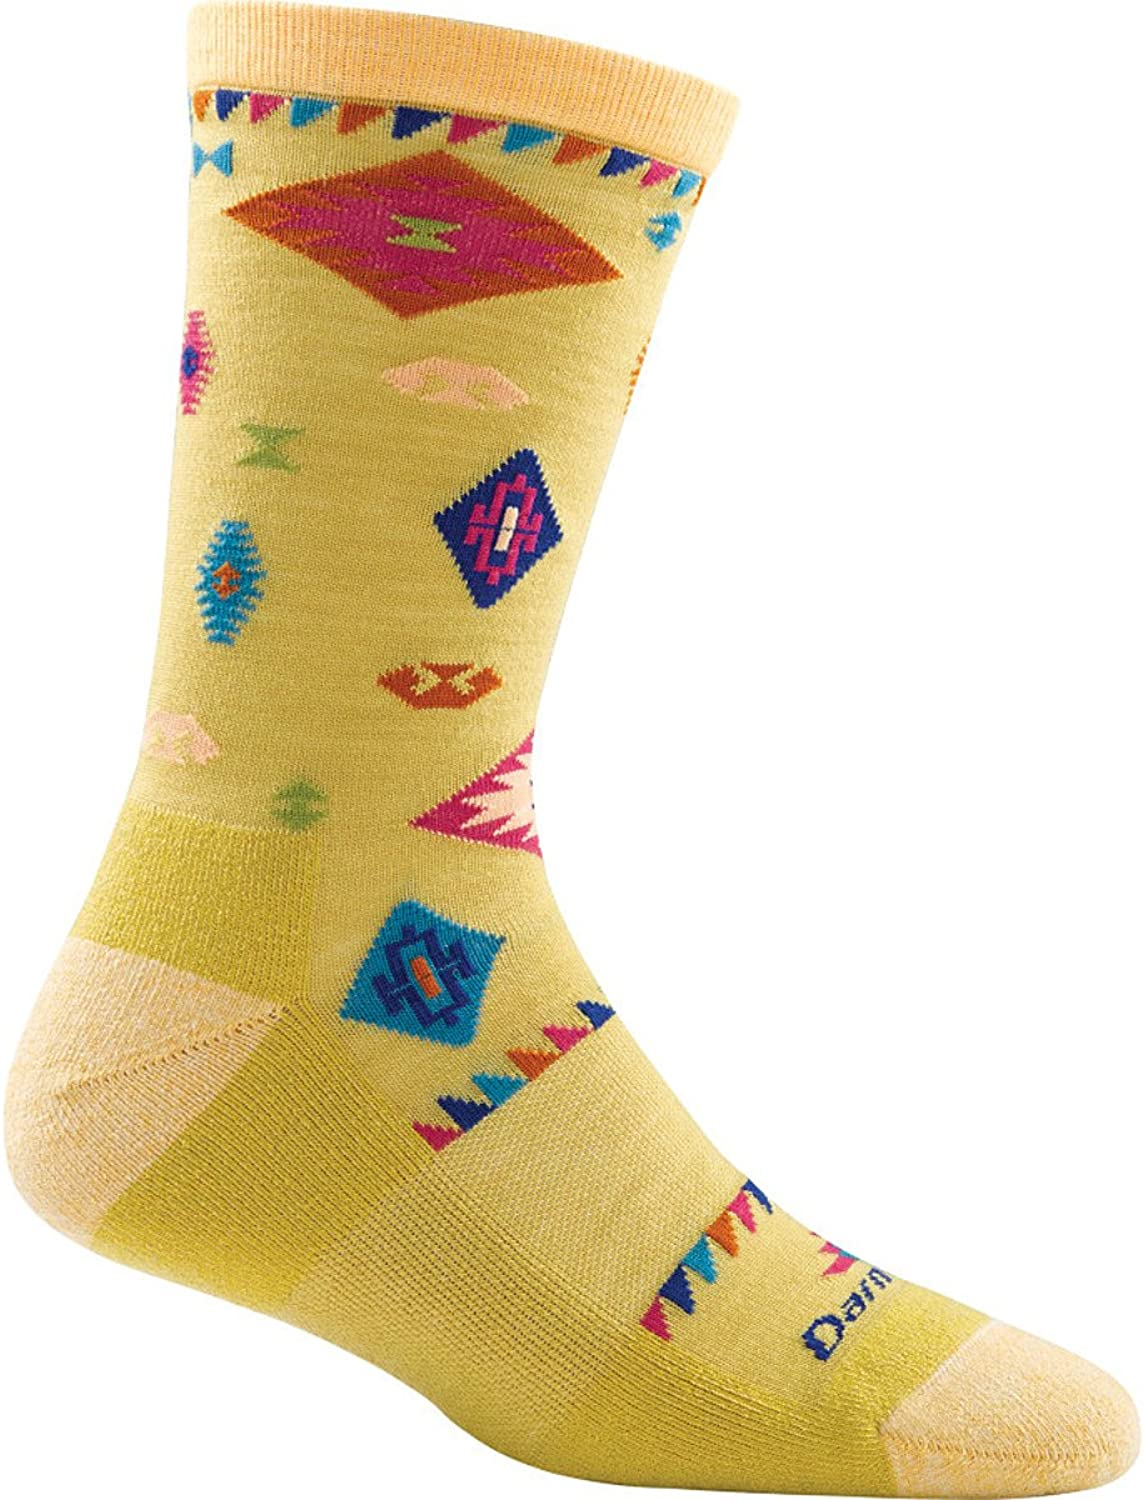 Darn Tough Women's Tribal Crew Light Cushion Socks, Curry Large